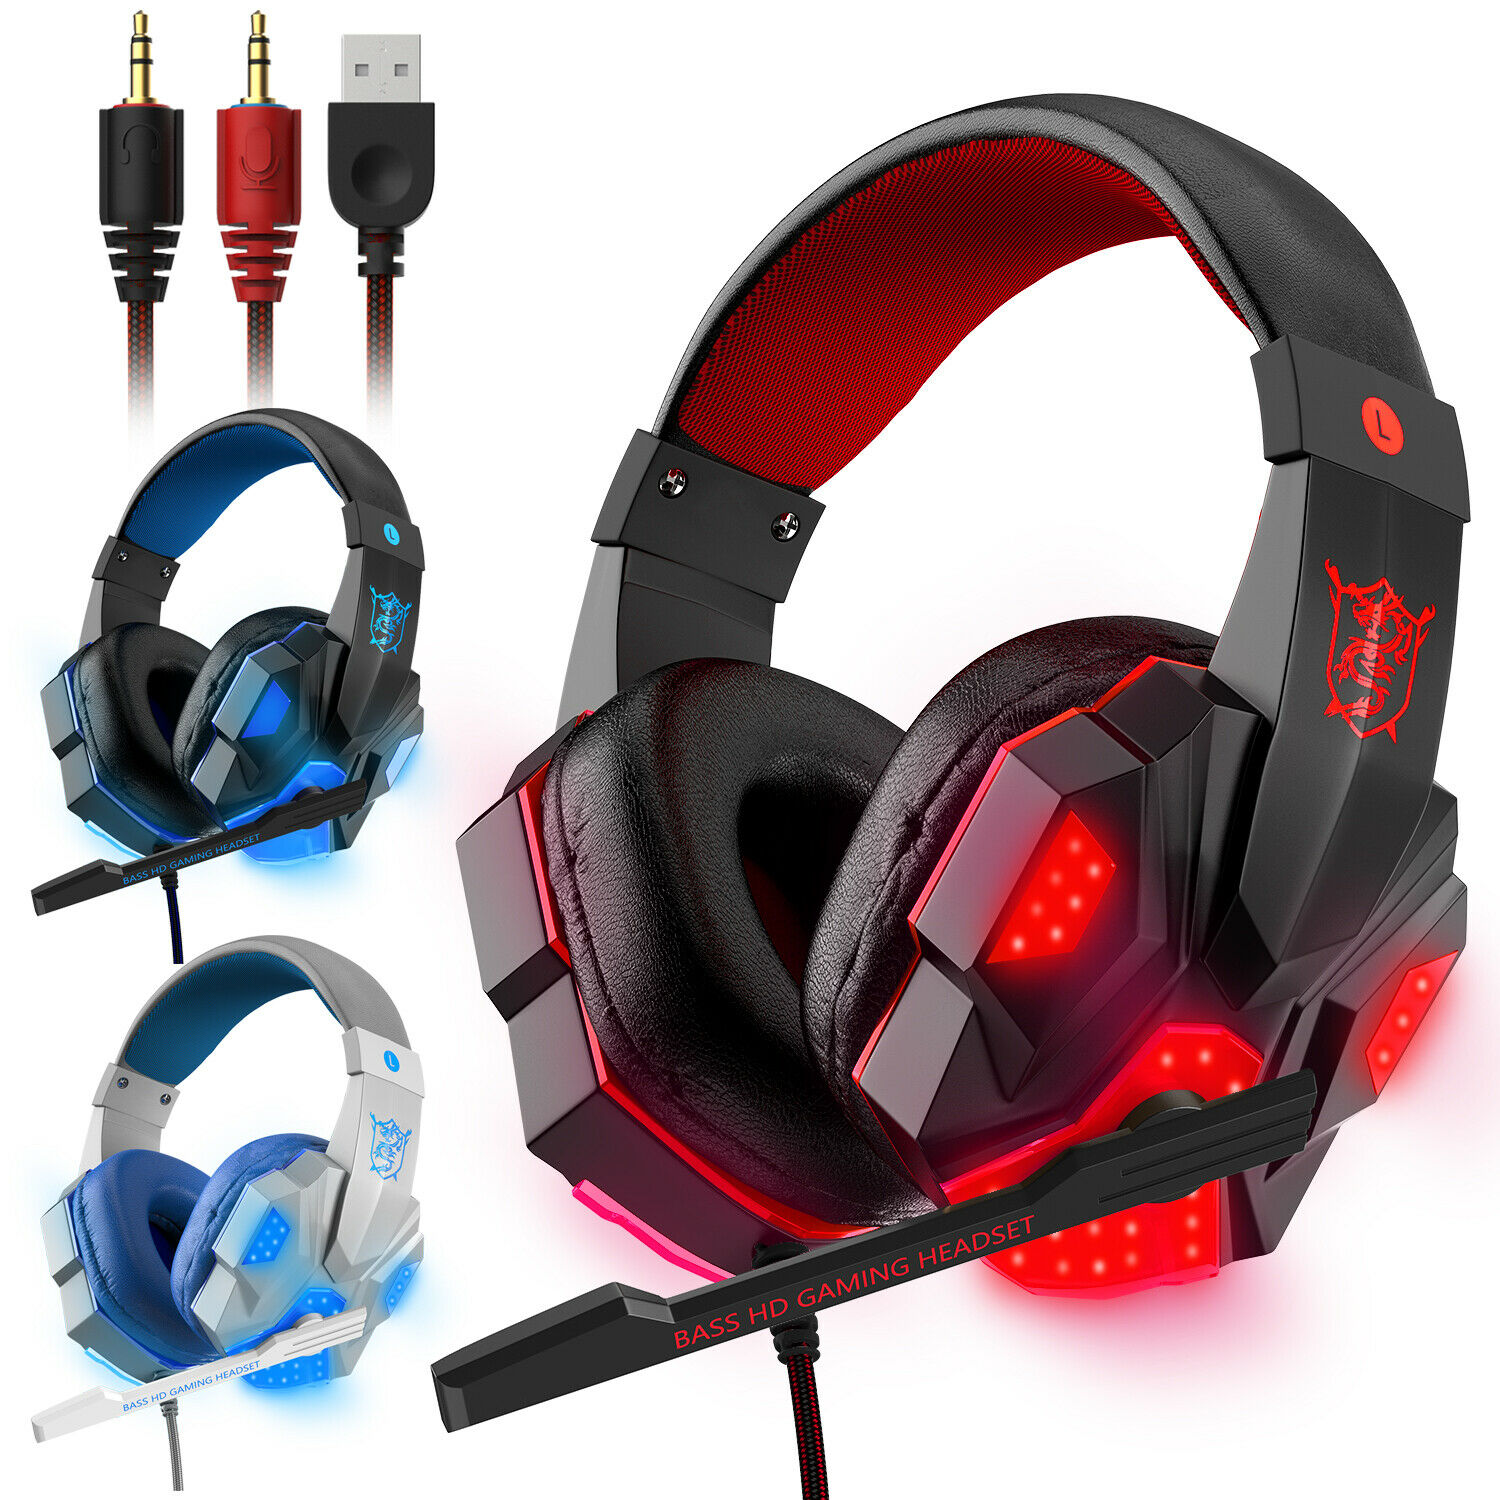 Plantronics Rig 400 Gaming Headset Headphones Mic Pc Ps4 Xbox One And Mobile For Sale Online Ebay